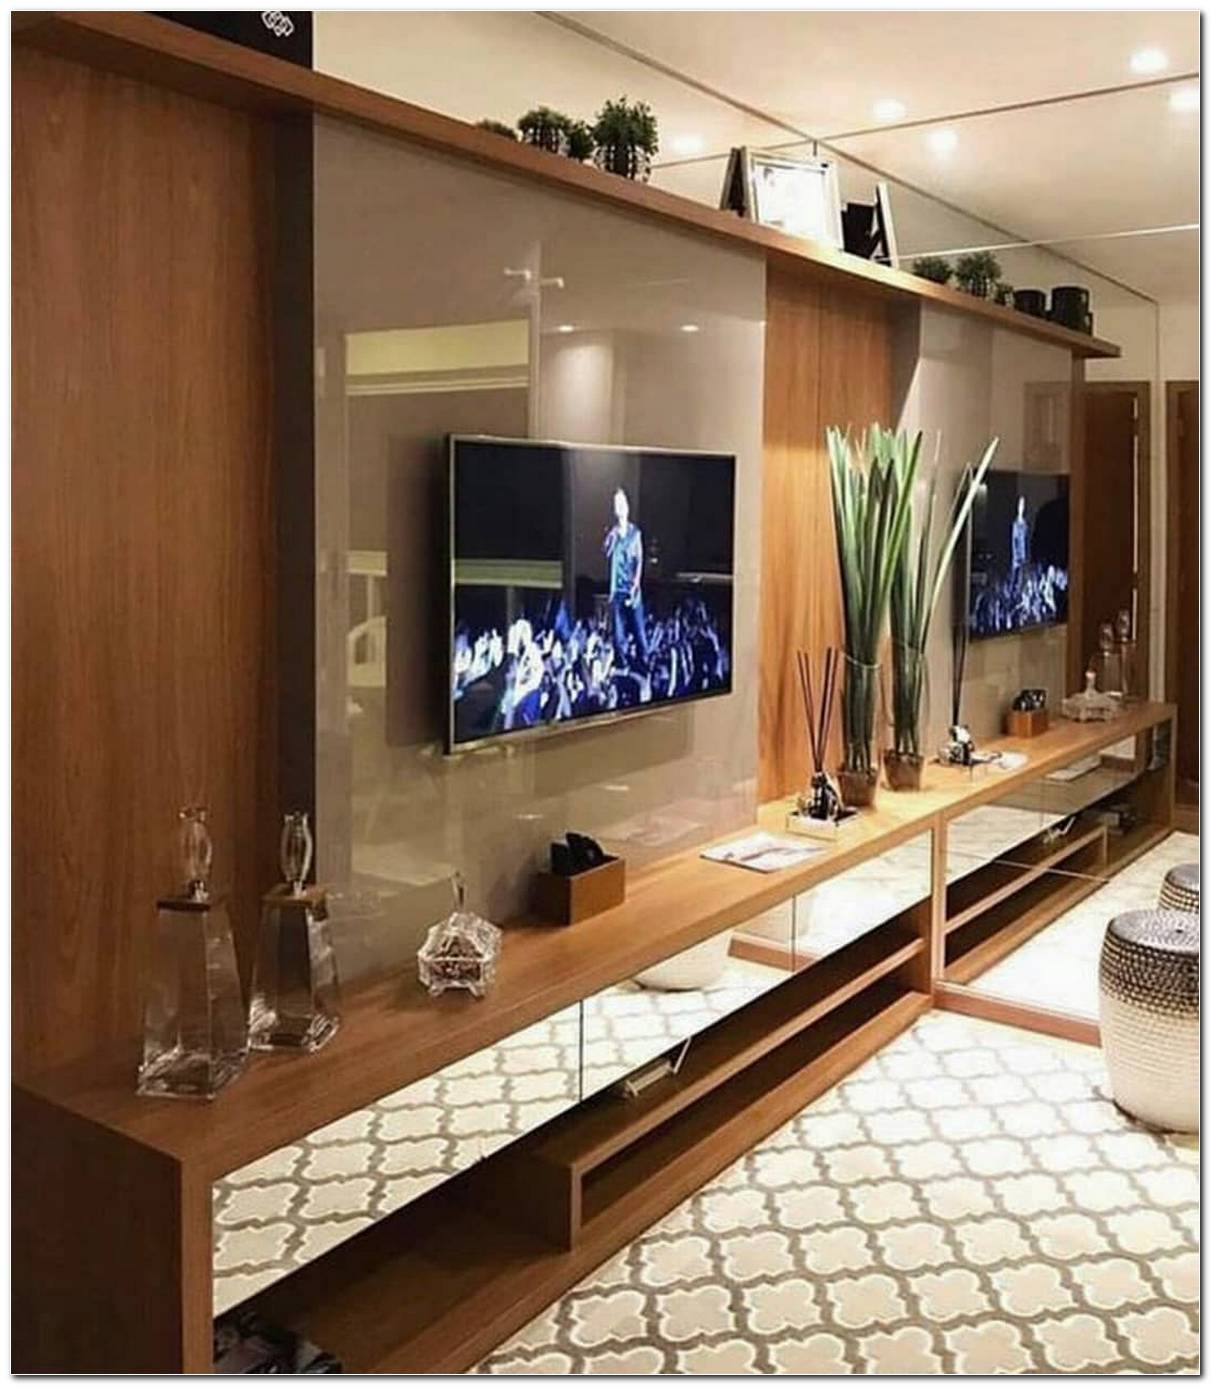 Sala Decorada Com Tv Na Parede